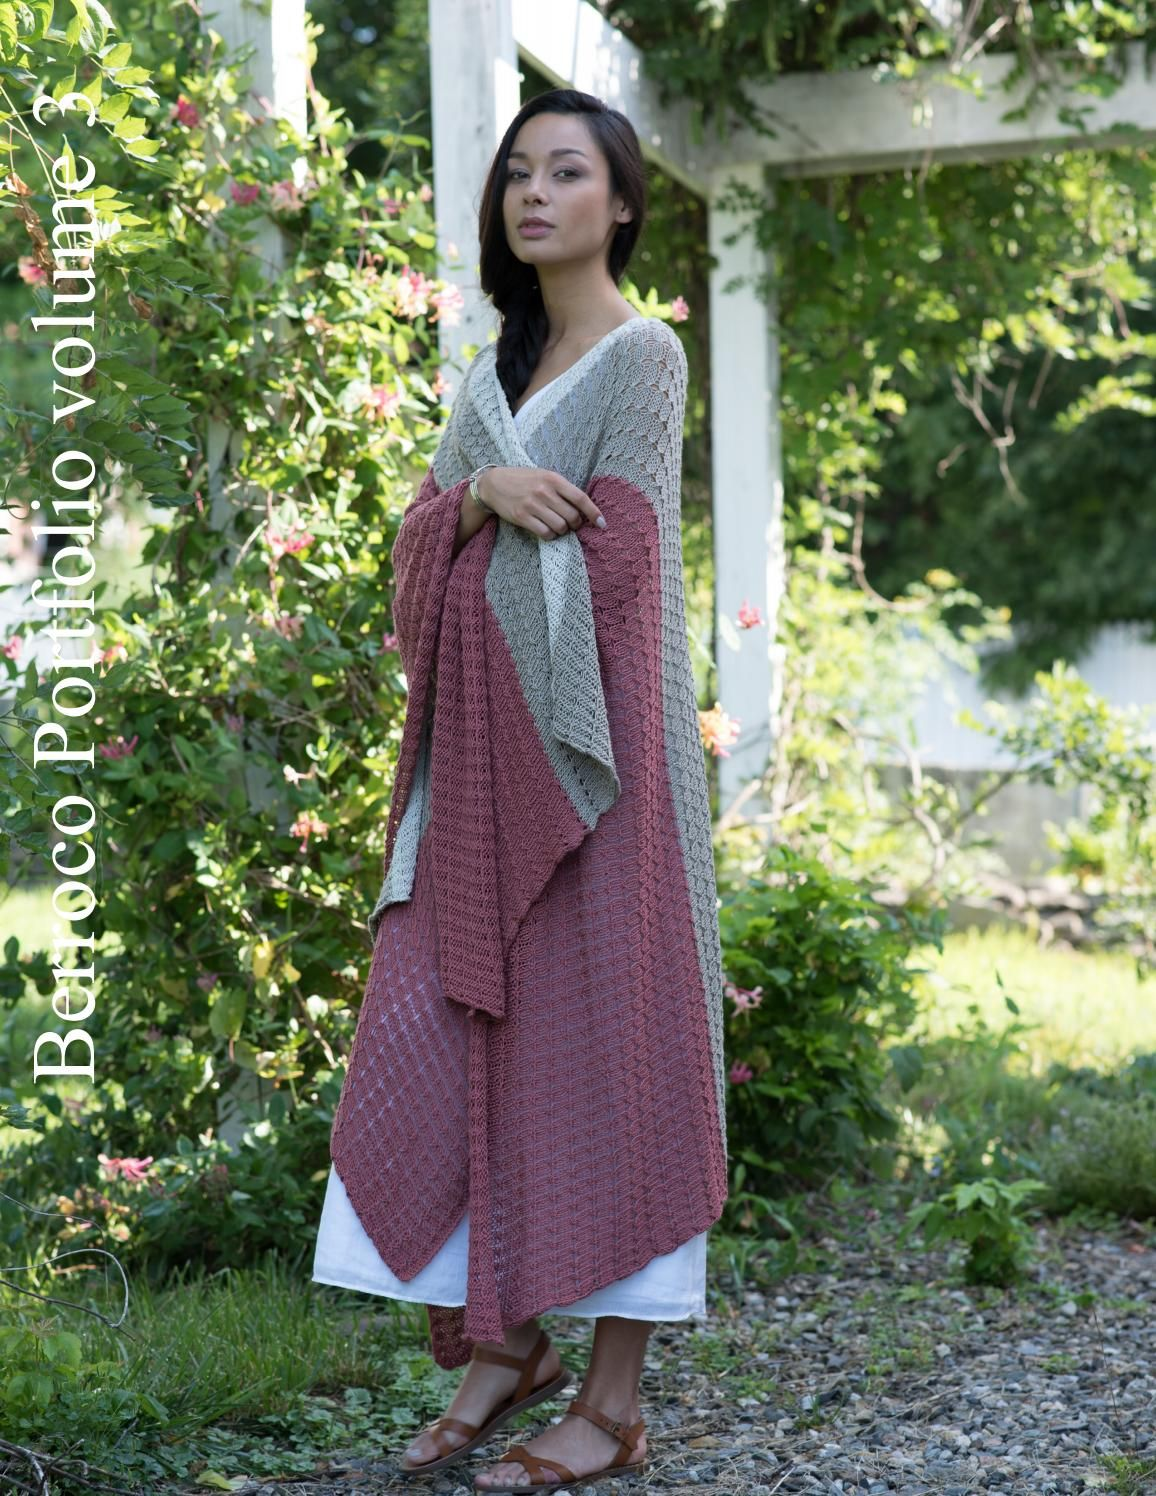 Awesome Berroco Crochet Patterns Gift - Sewing Pattern for Wedding ...